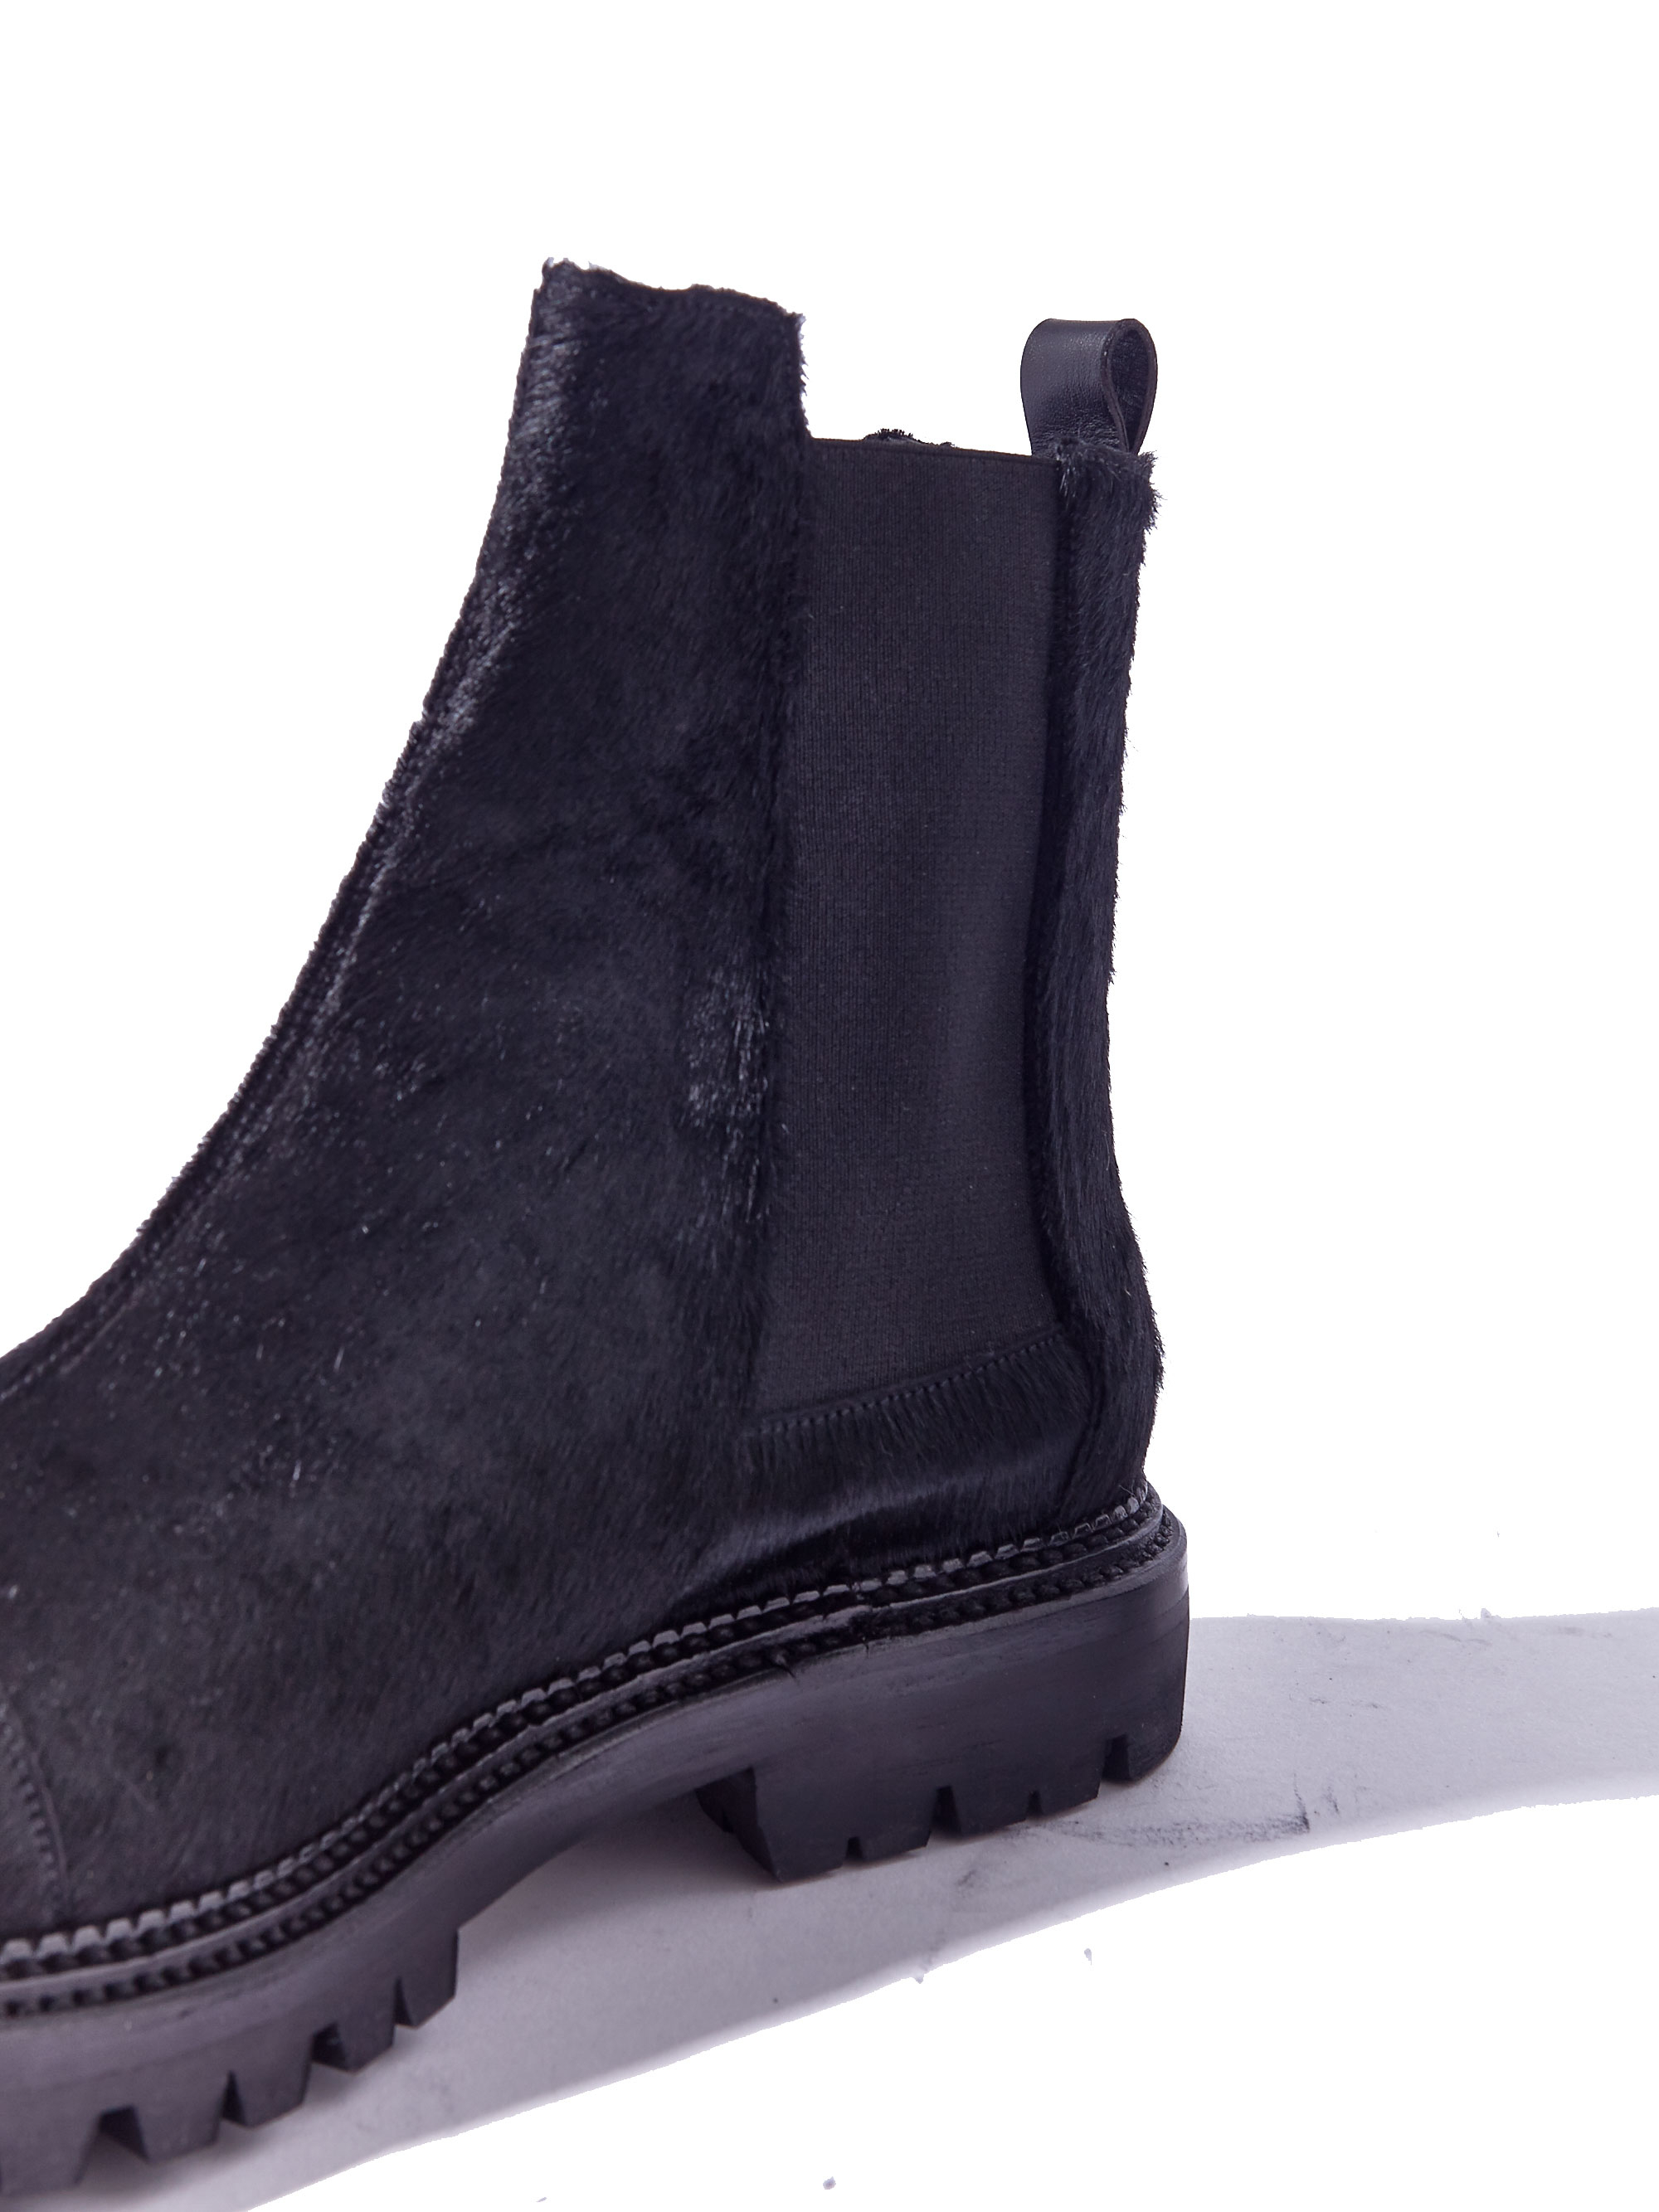 Simple Joules Womenu0026#39;s Westbourne Leather Chelsea Boots - Black V_WESTBOURNE | Country Attire